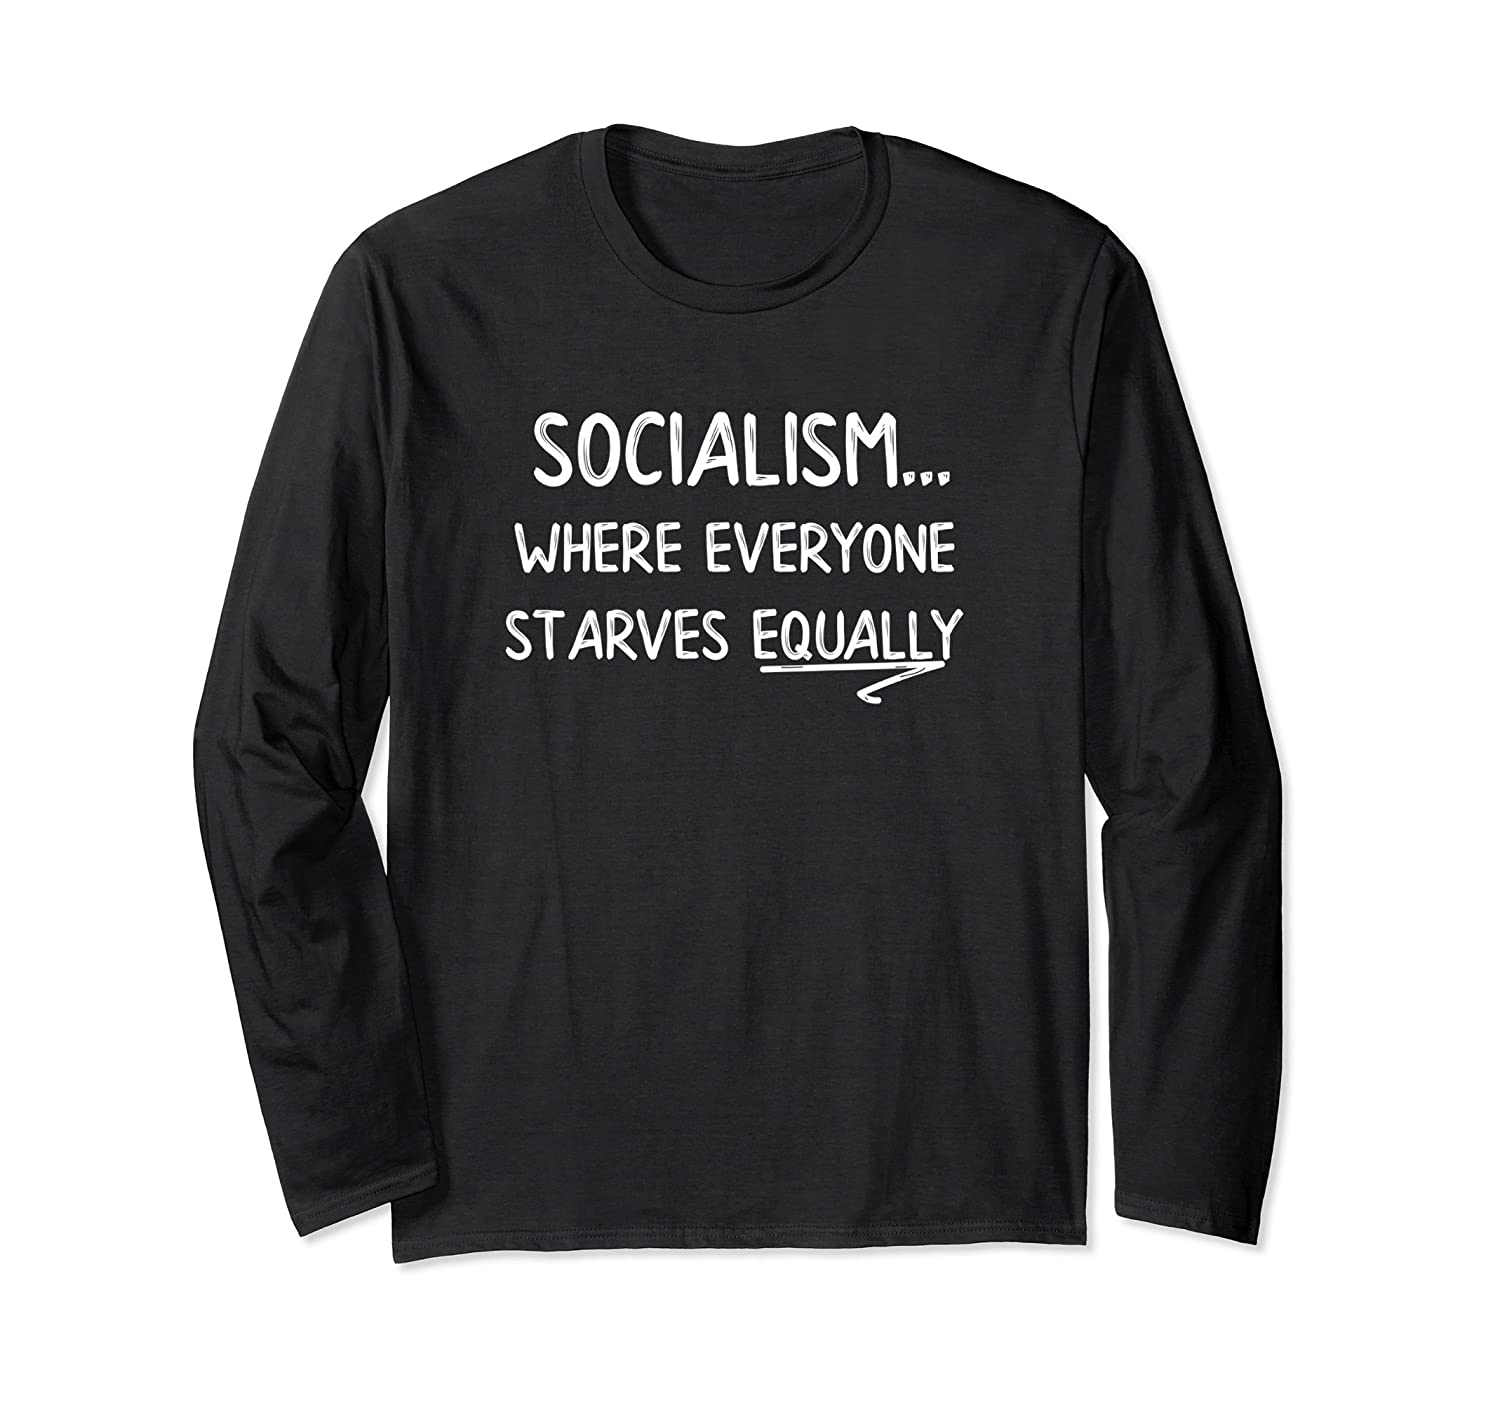 ee95d7066 Funny Anti Liberal Shirt Gift for Conservative Libertarian-ah my shirt one  gift